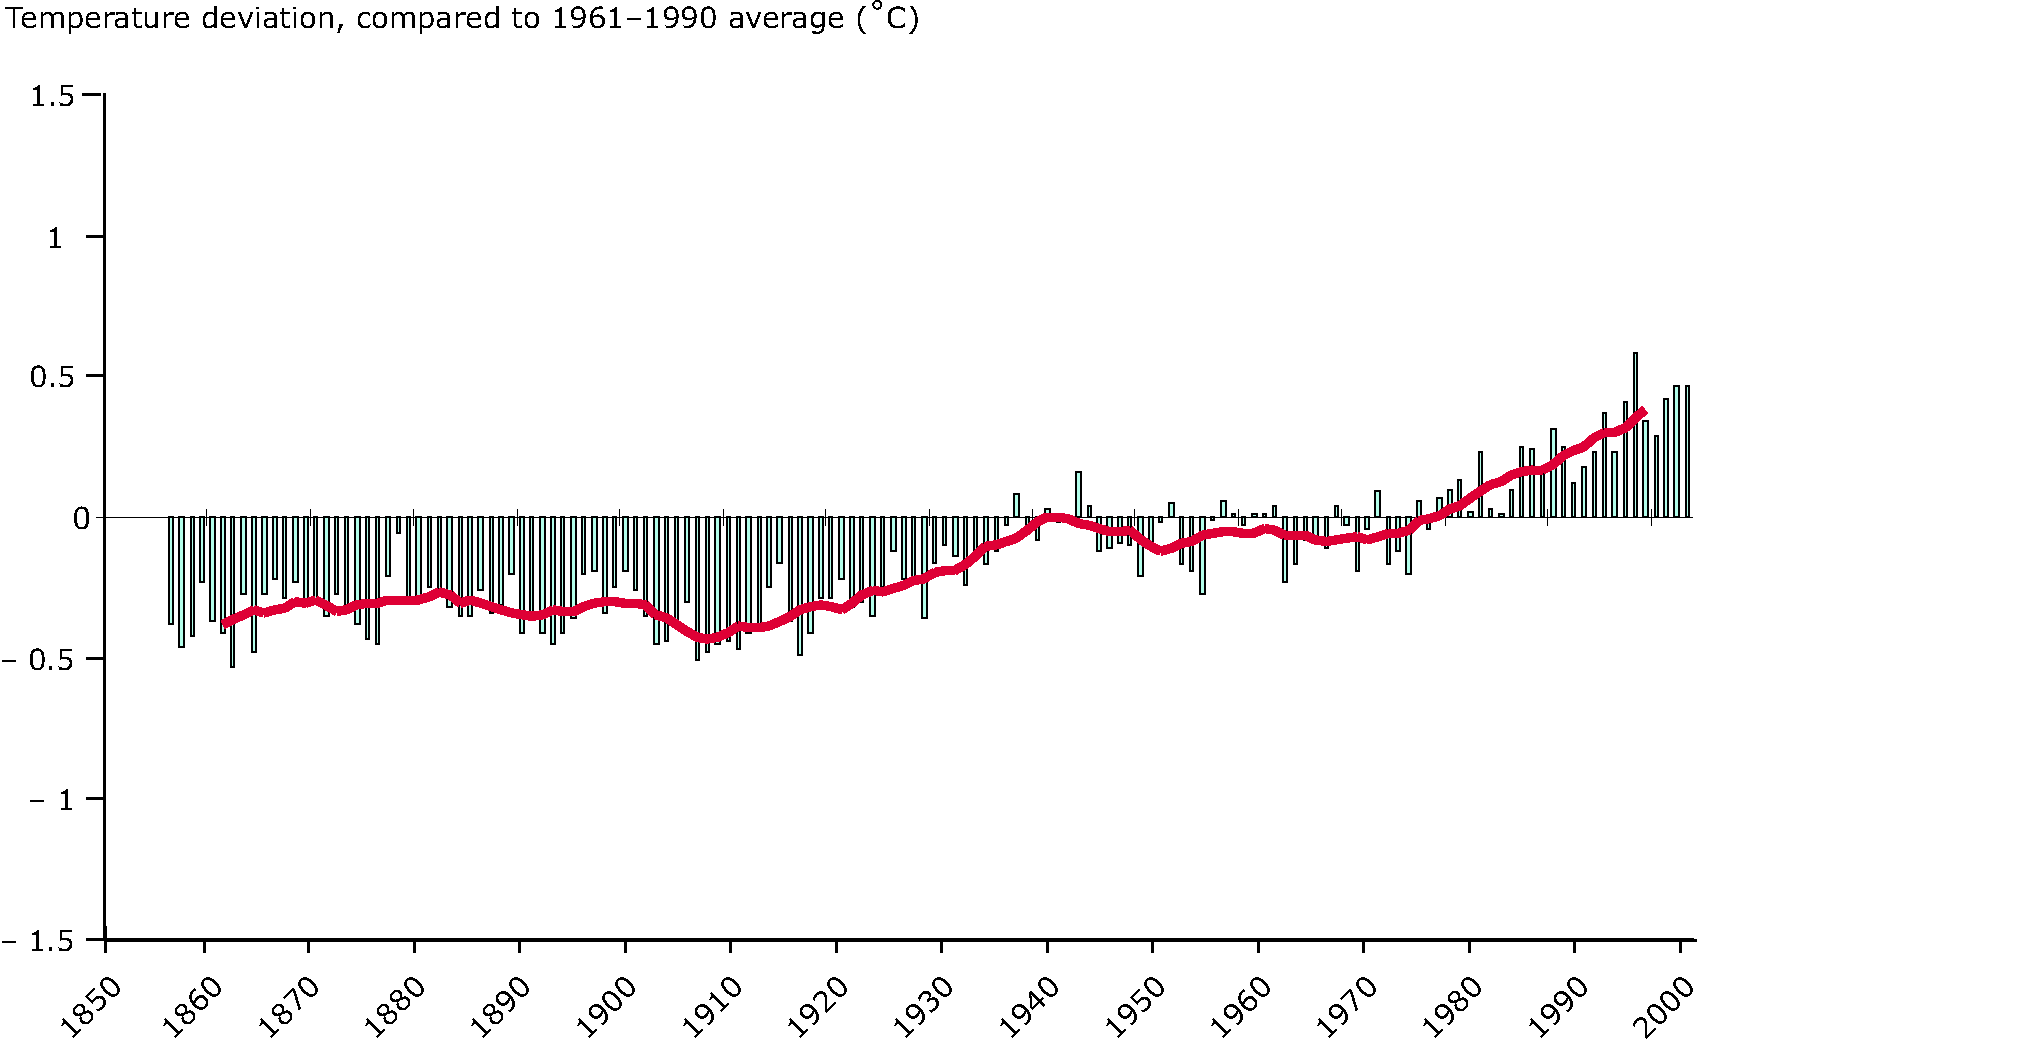 Global annual average temperature deviations, 1850-2004, compared with the 1961-1990 average (in oC)